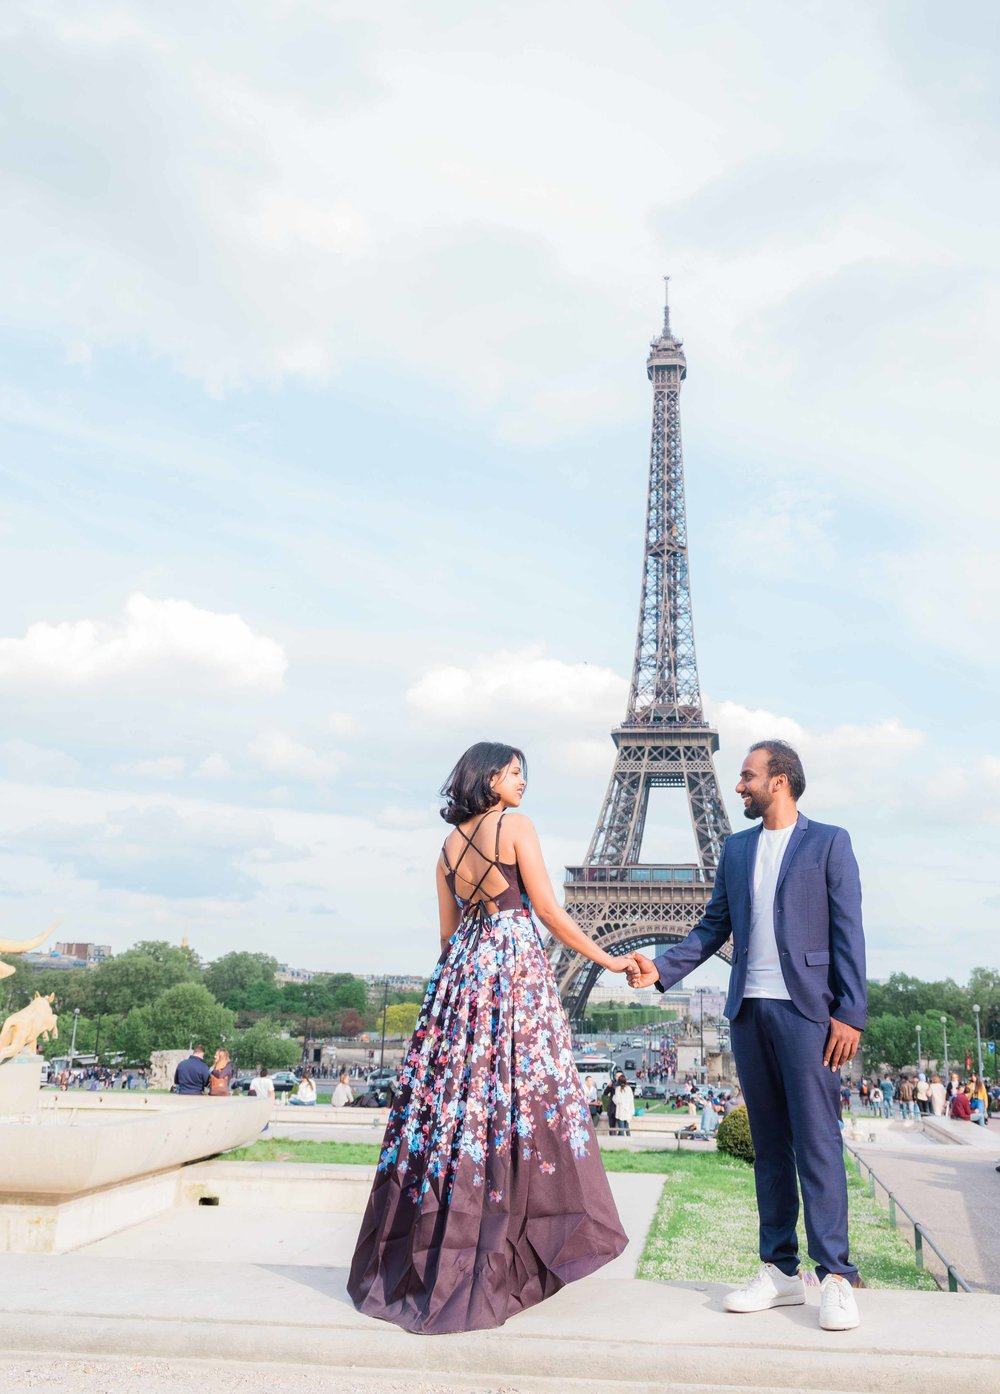 elegant and classy couple in love at the eiffel tower trocadero in paris france